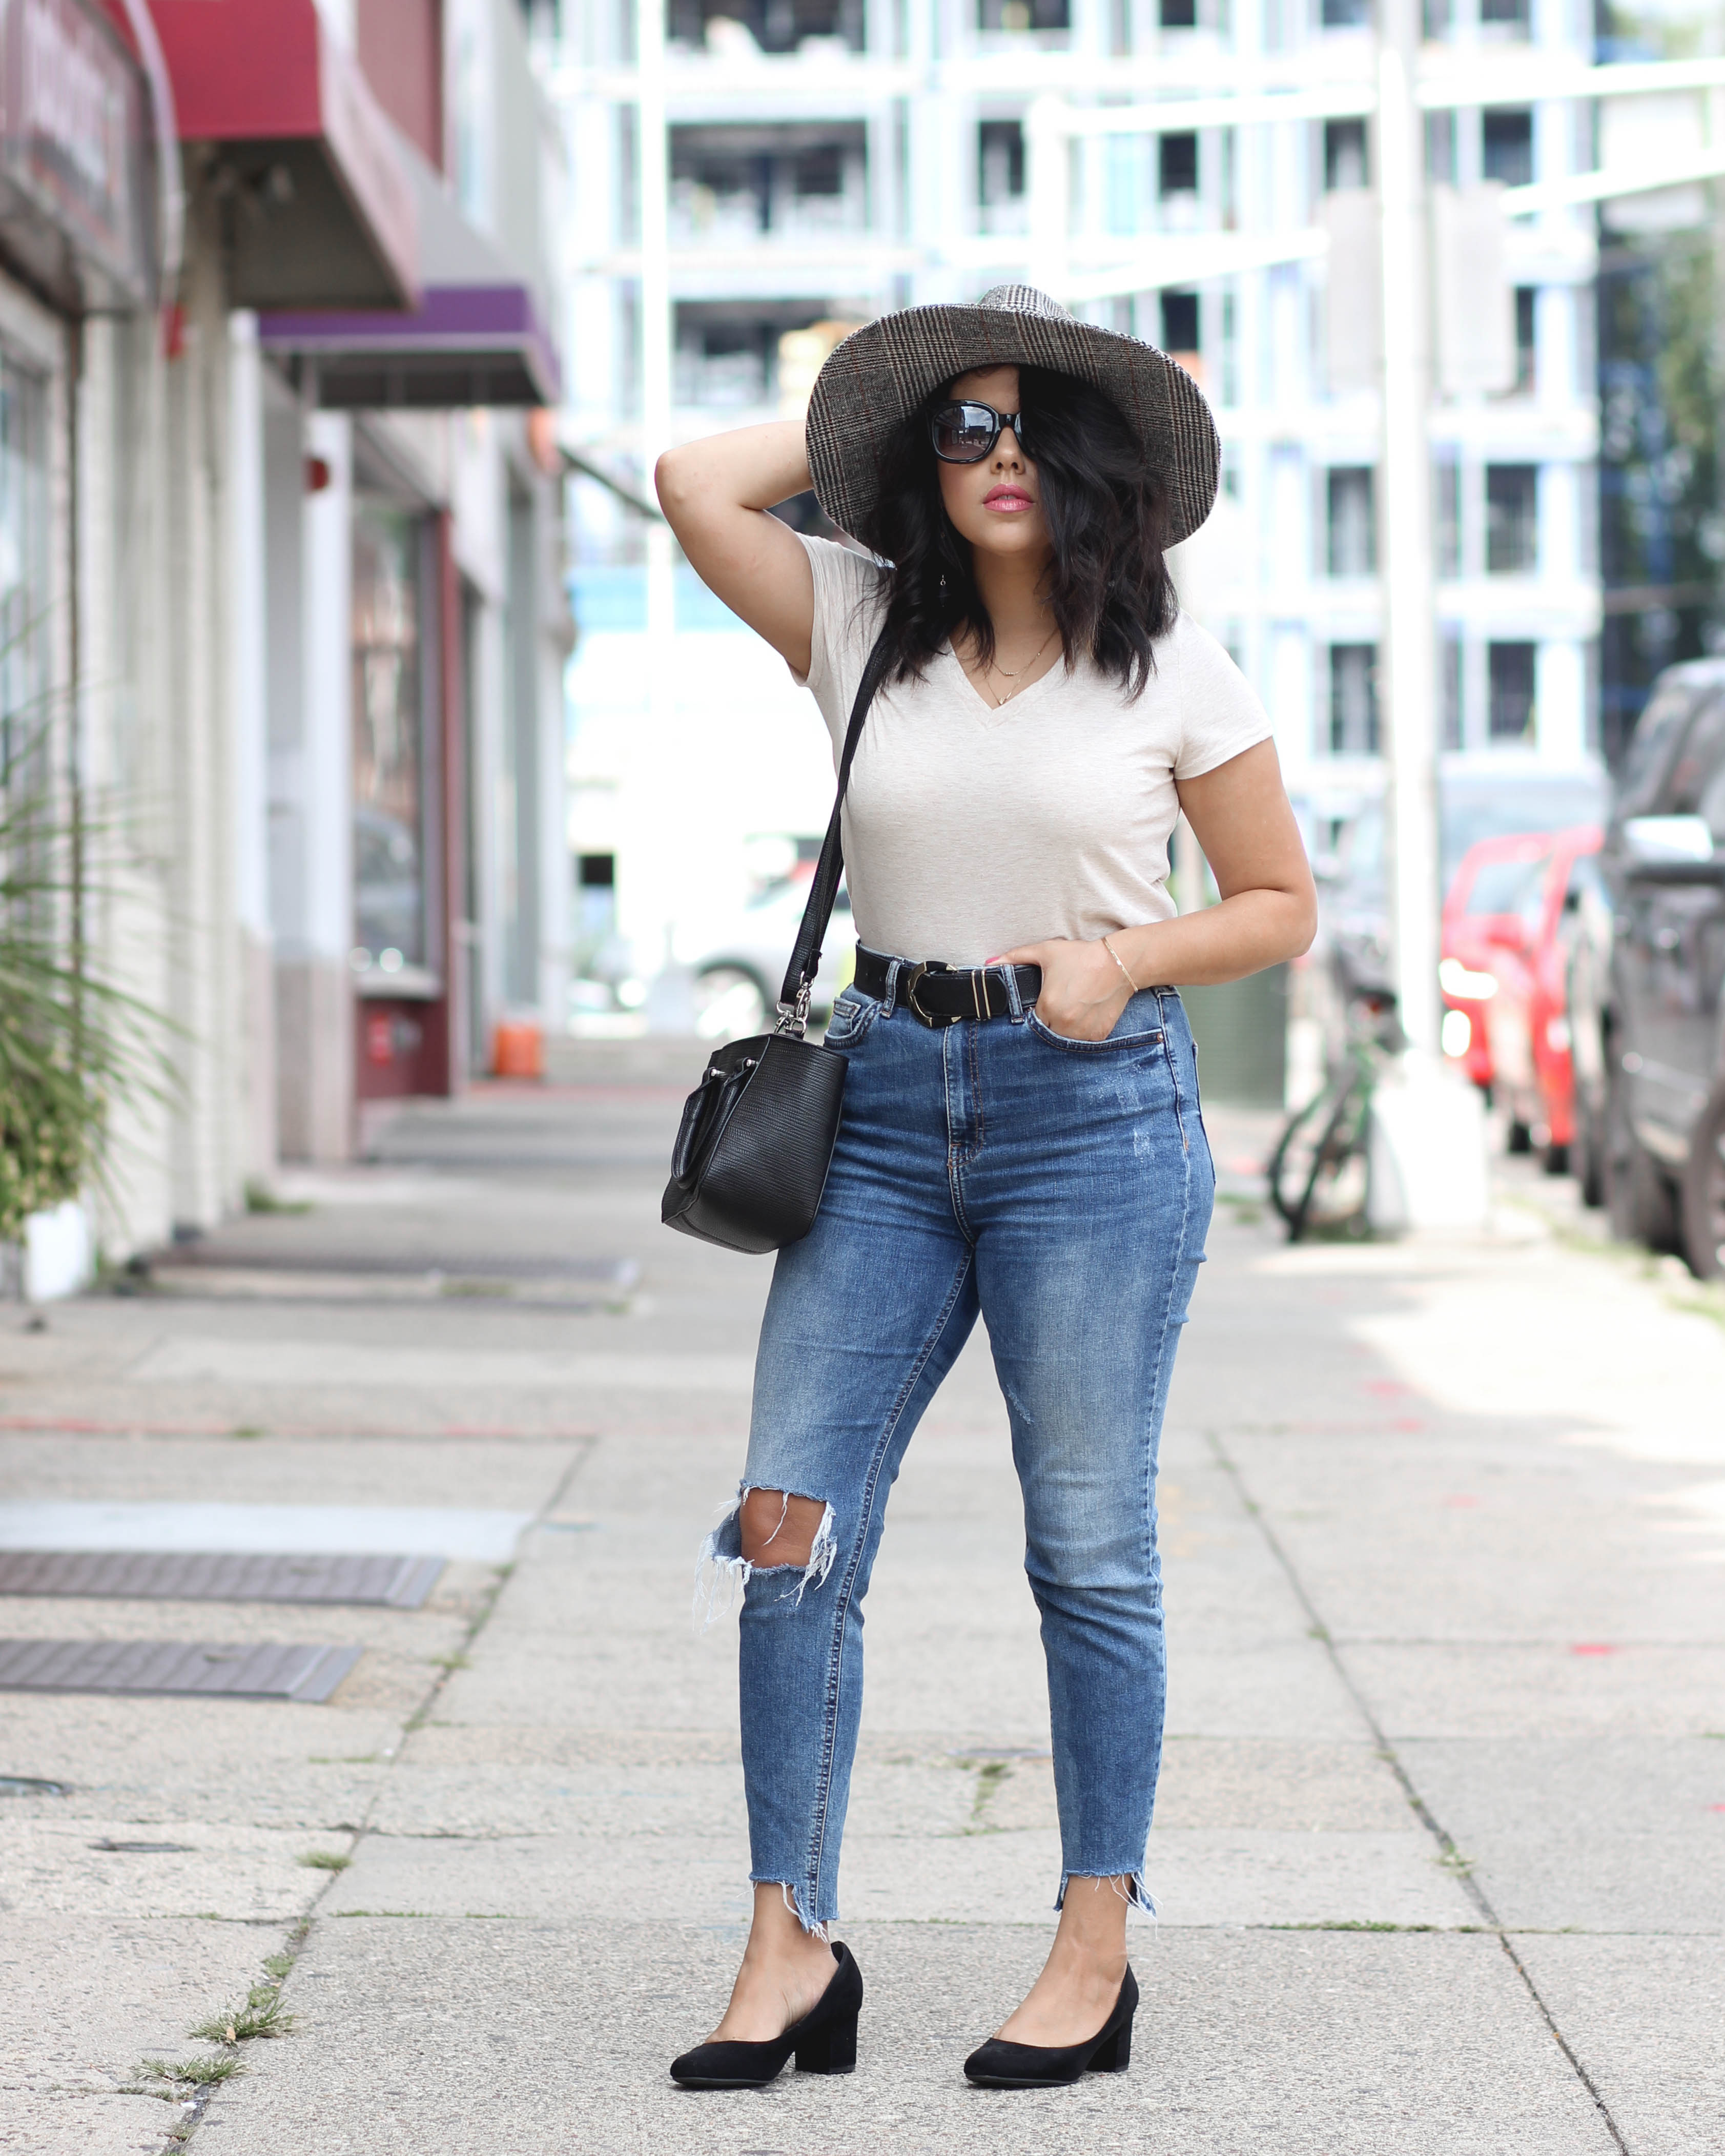 Lifestyle blogger Naty Michele wearing a wide brim hat and jeans